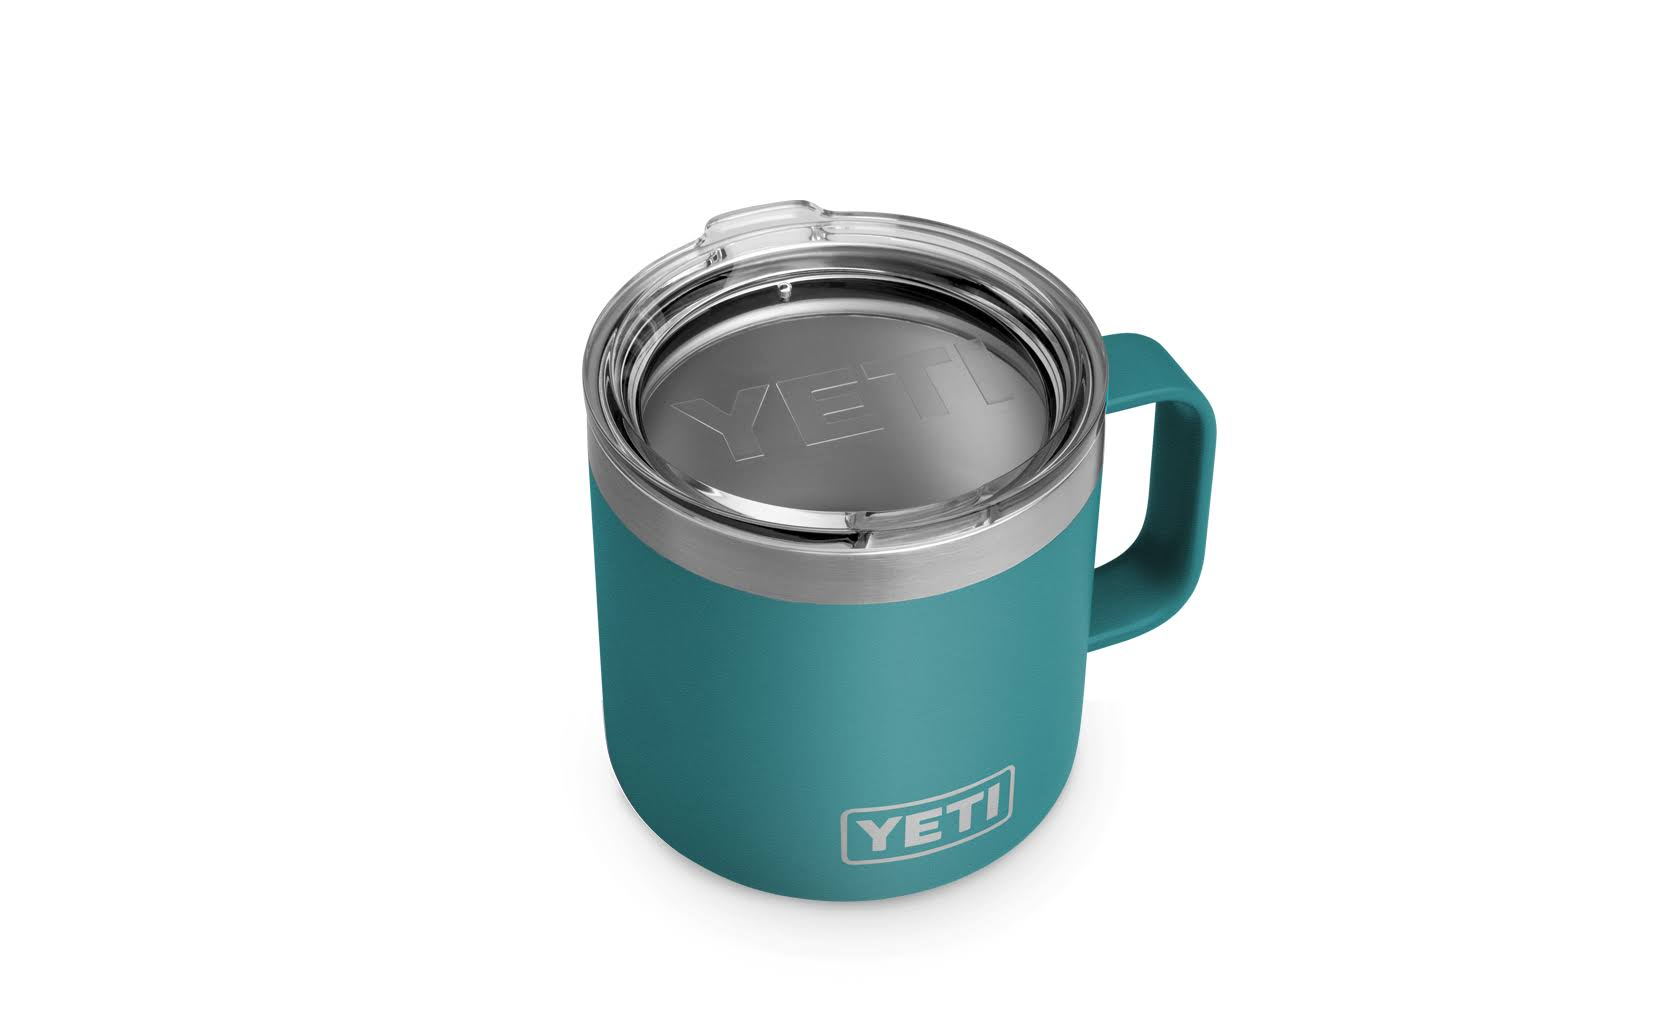 Yeti Rambler 14 oz Mug - River Green